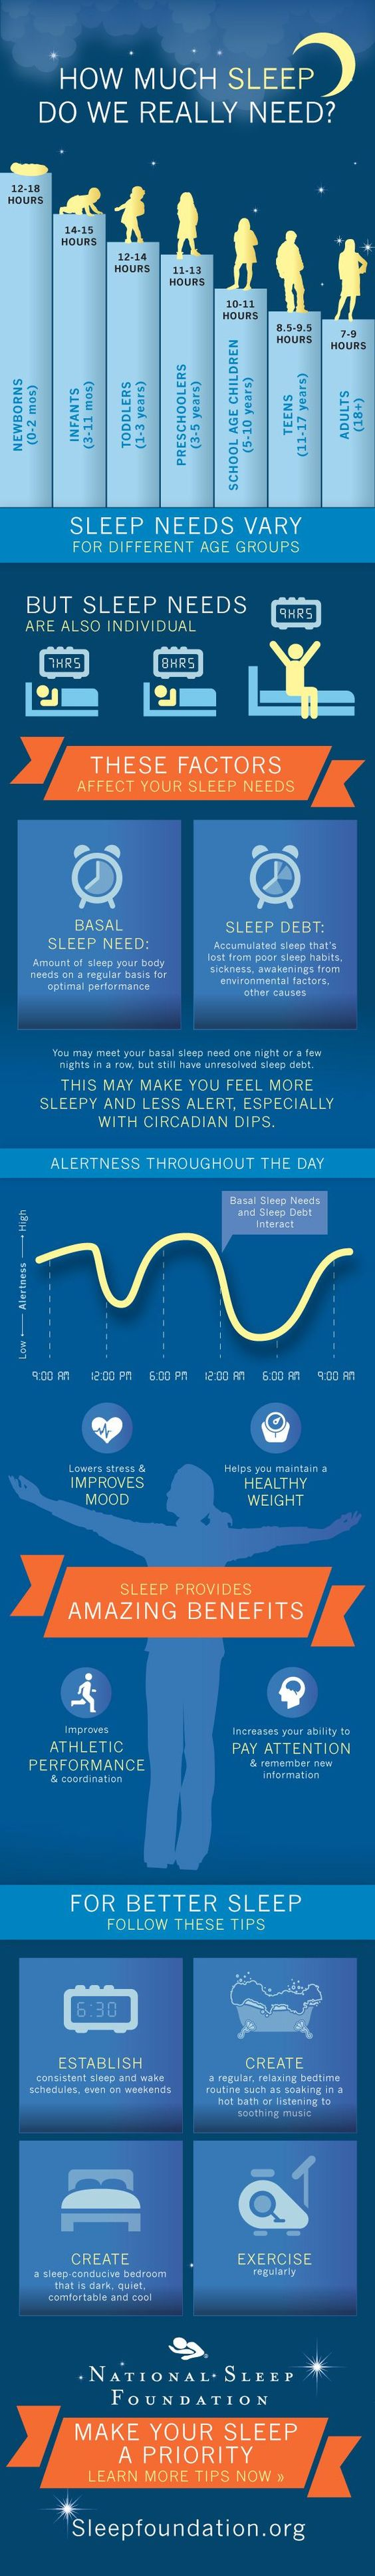 Sleep   Tipsographic   More sleep tips at http://www.tipsographic.com/ get better sleep, sleeping tips